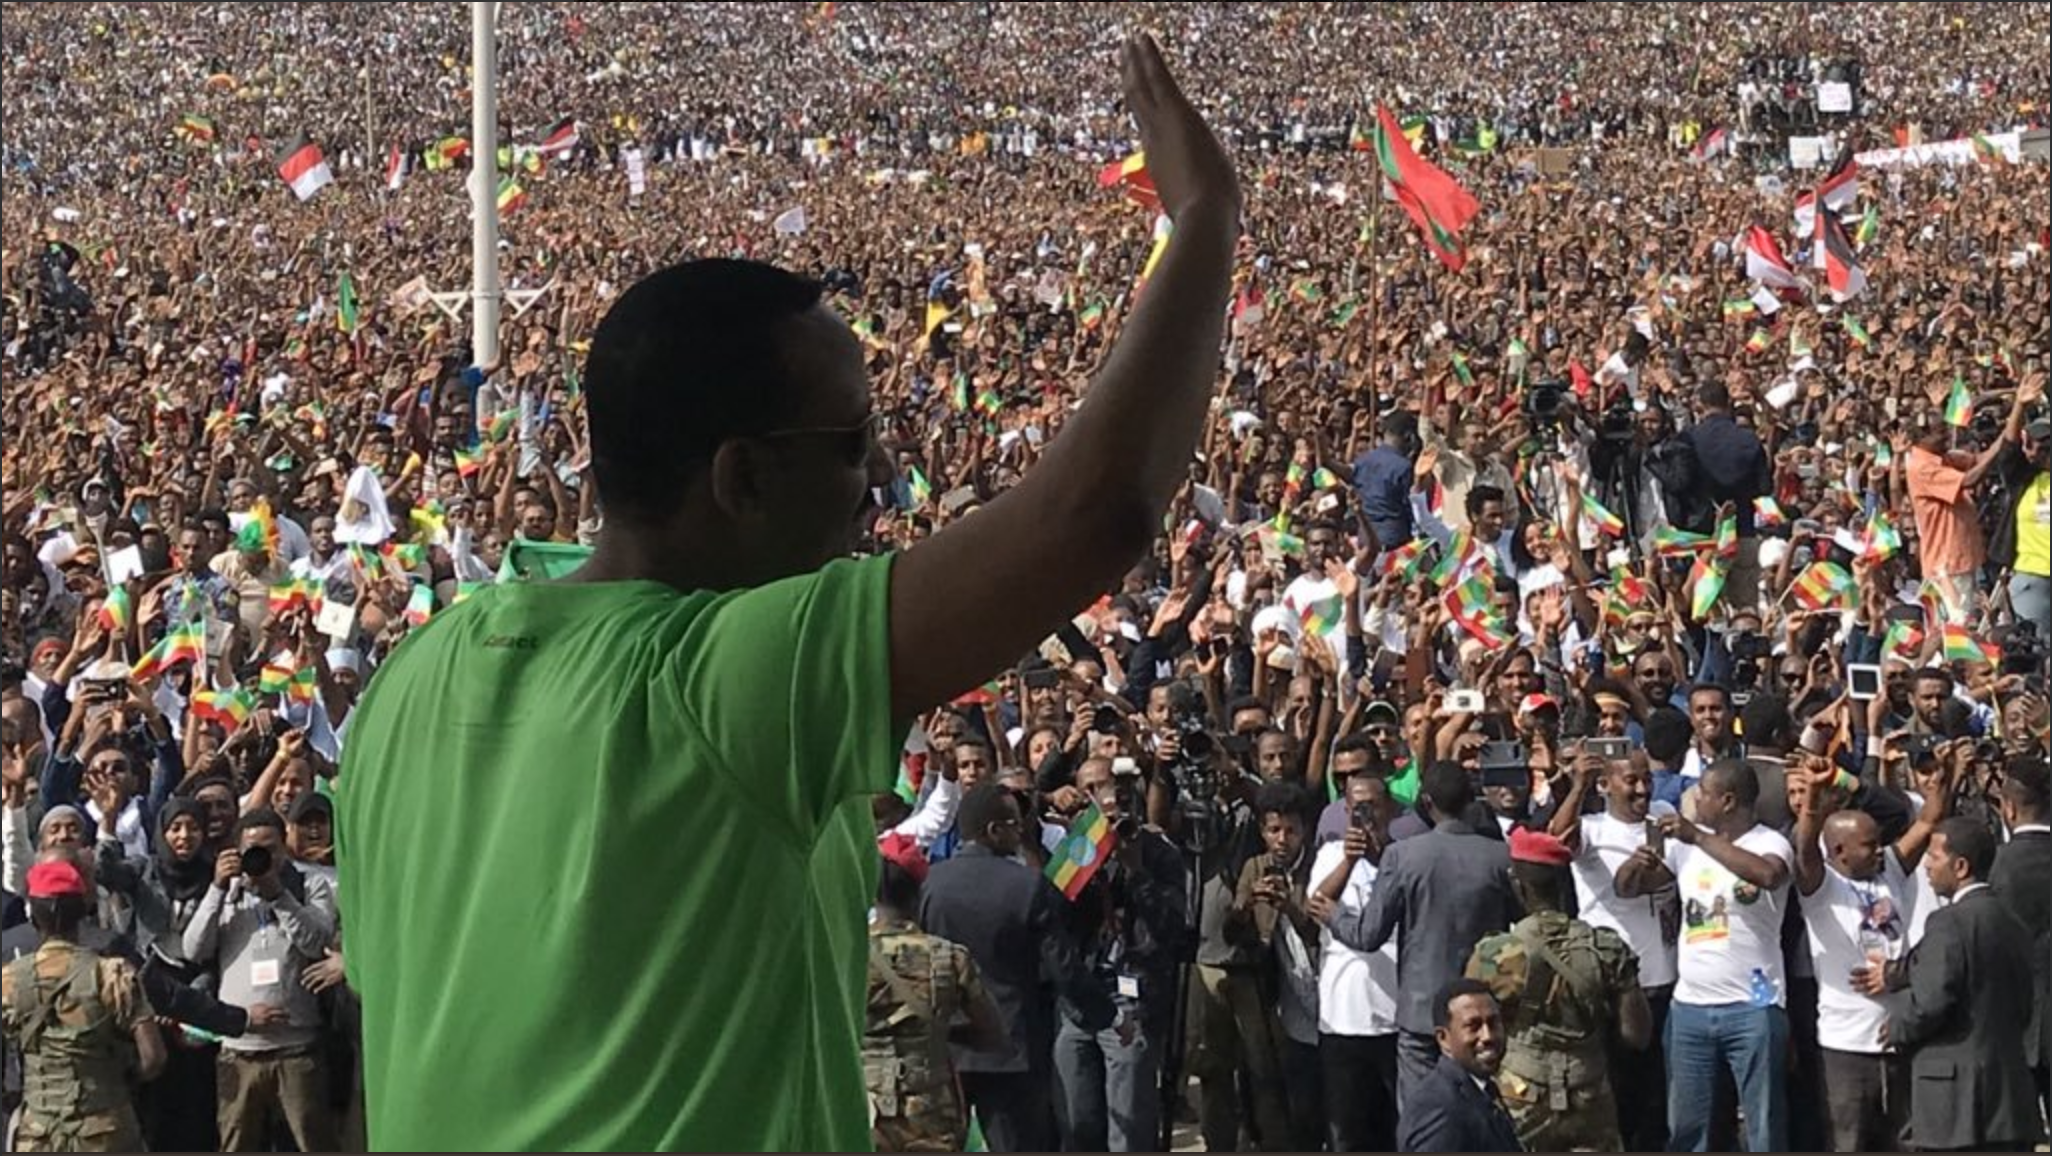 Abiy Ahmed, Prime Minister of Ethiopia, waves at a rally.